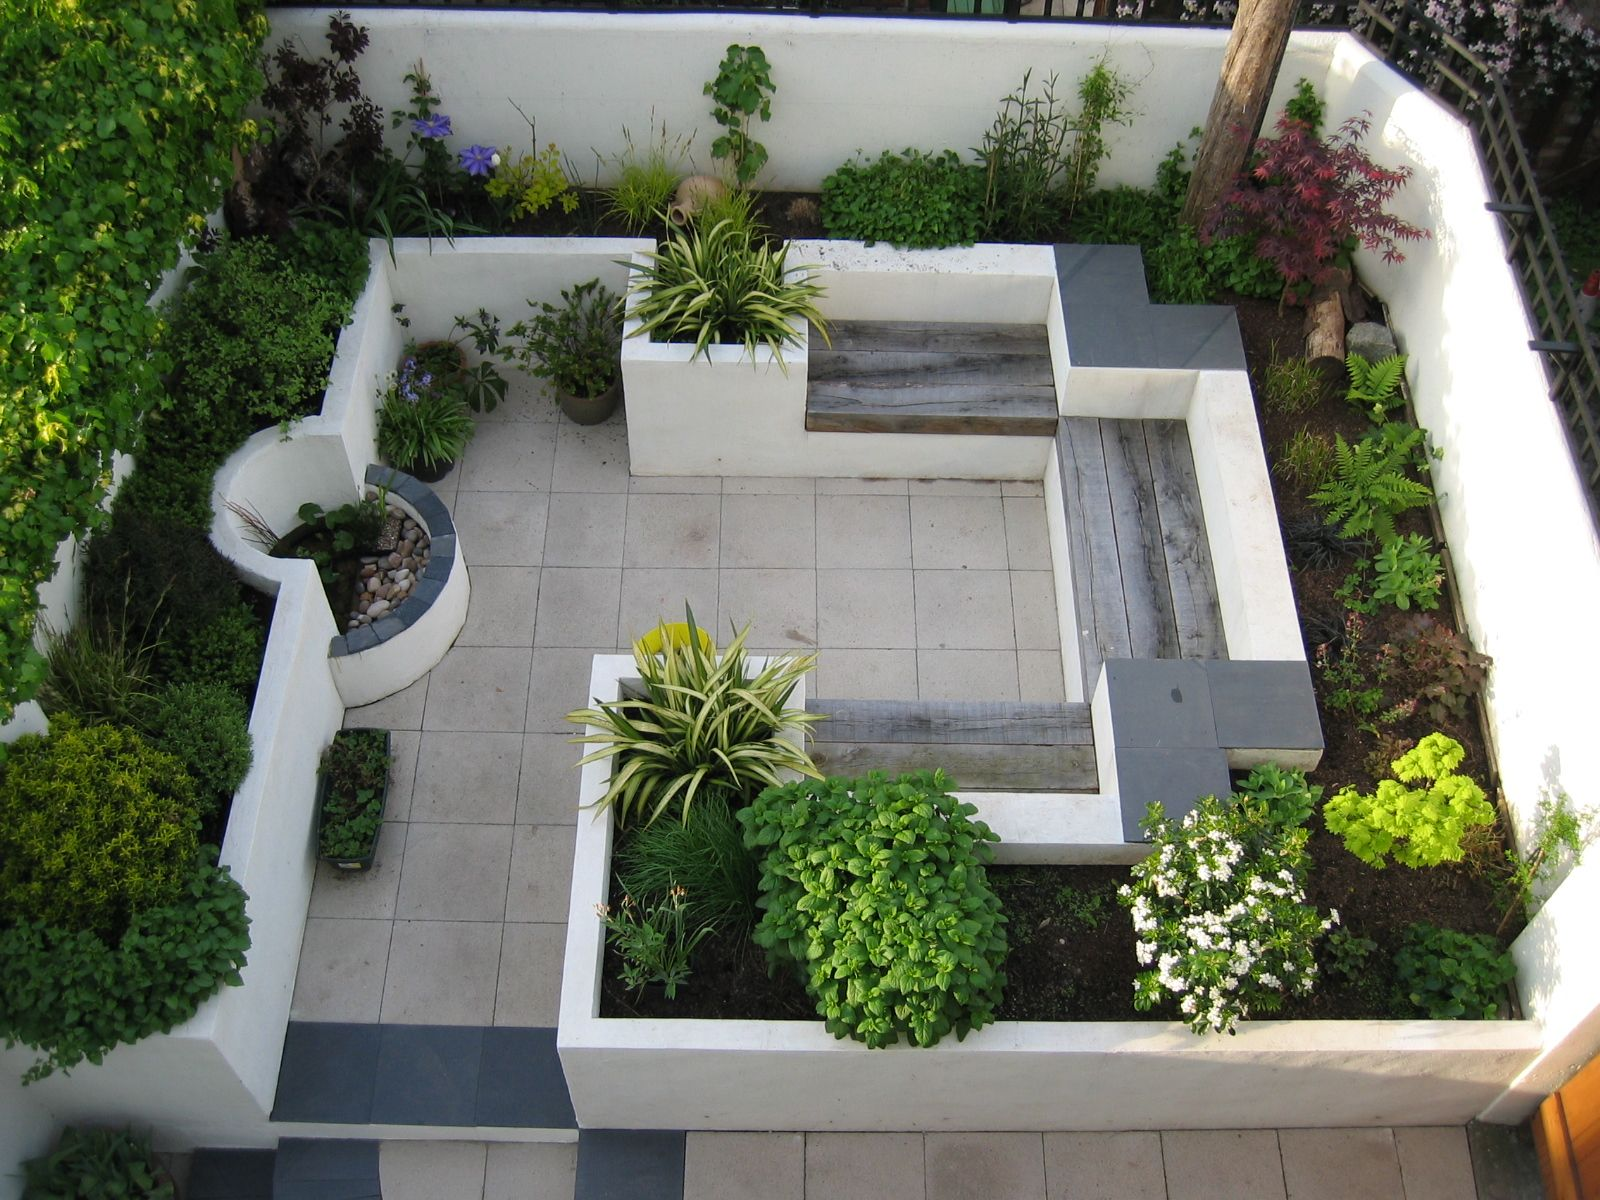 This modern courtyard garden makes good use of a small for Courtyard landscape design